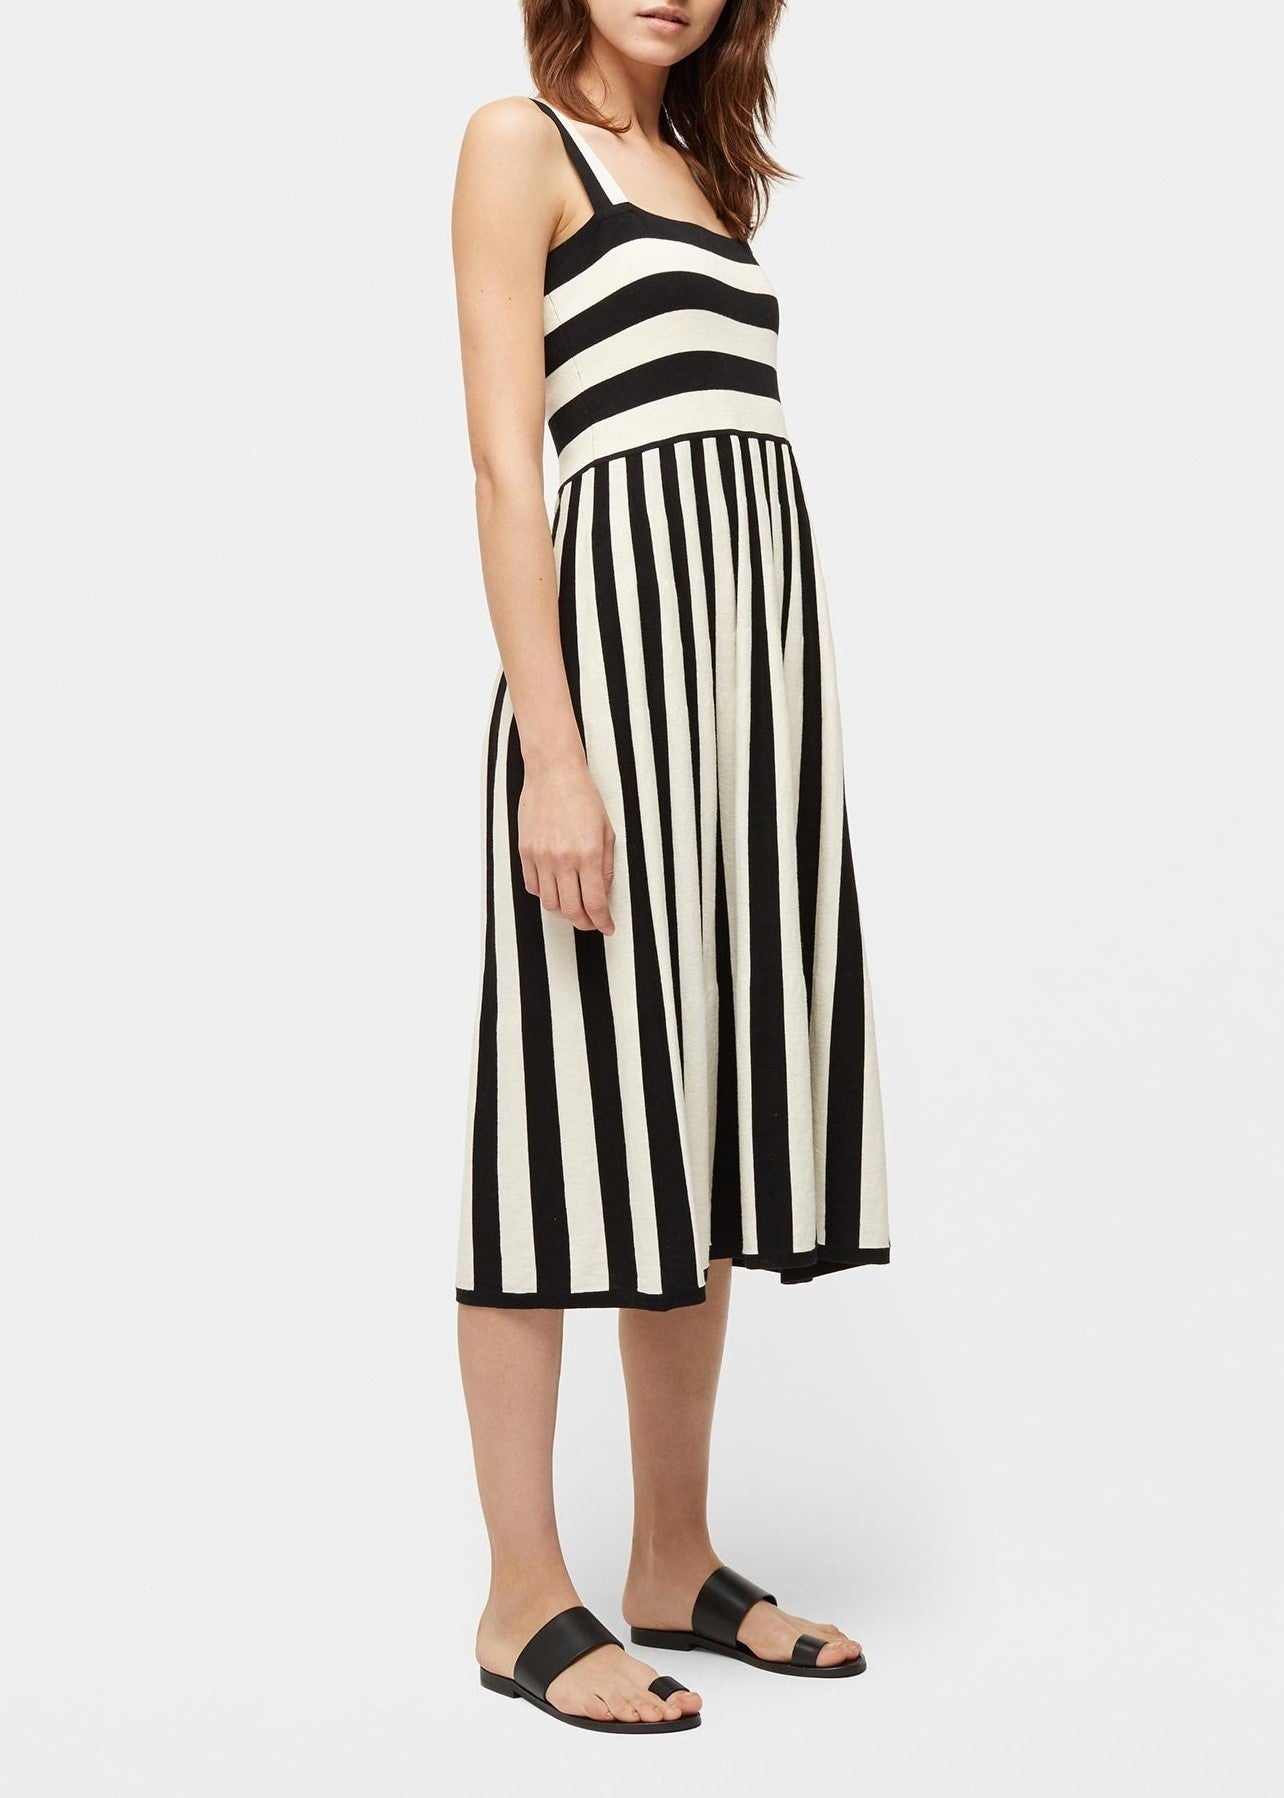 Chinti & Parker mixed stripe sundress in buttermilk black